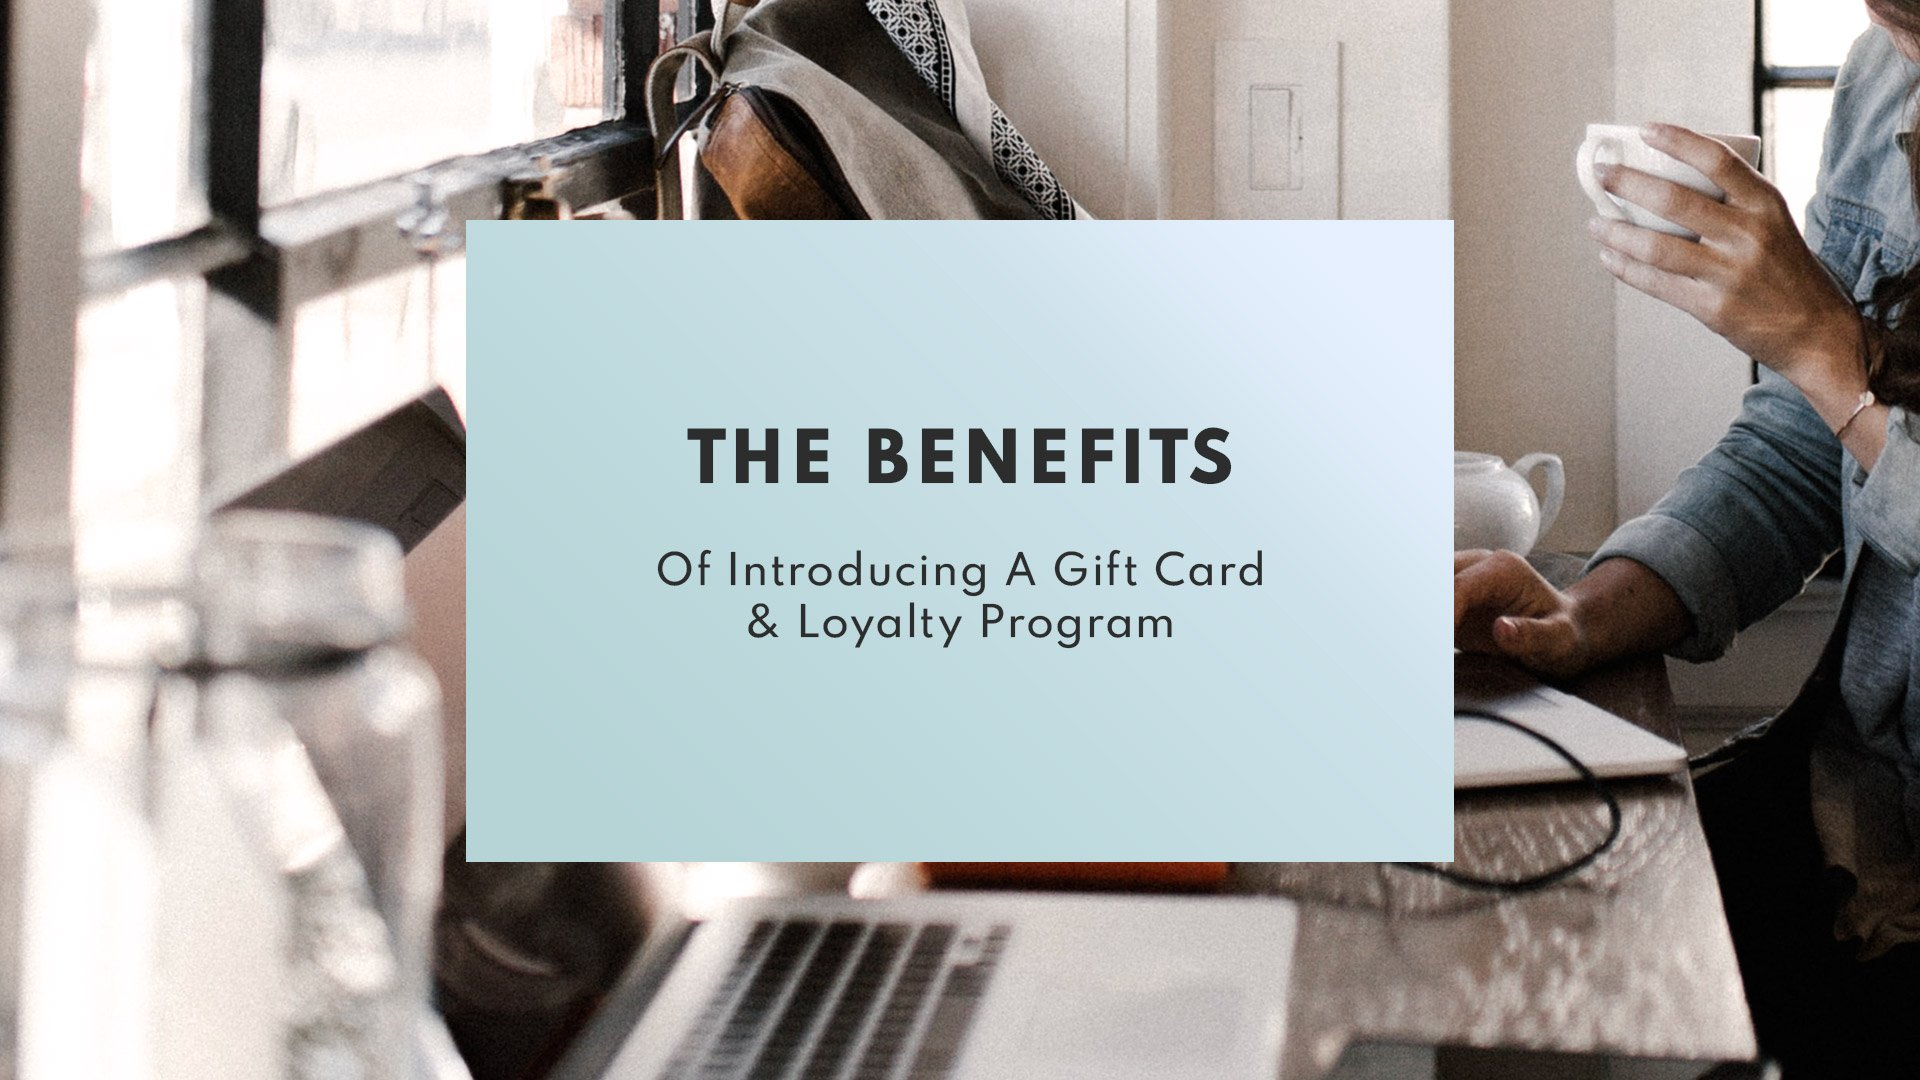 The Benefits of Introducing a Gift Card & Loyalty Program